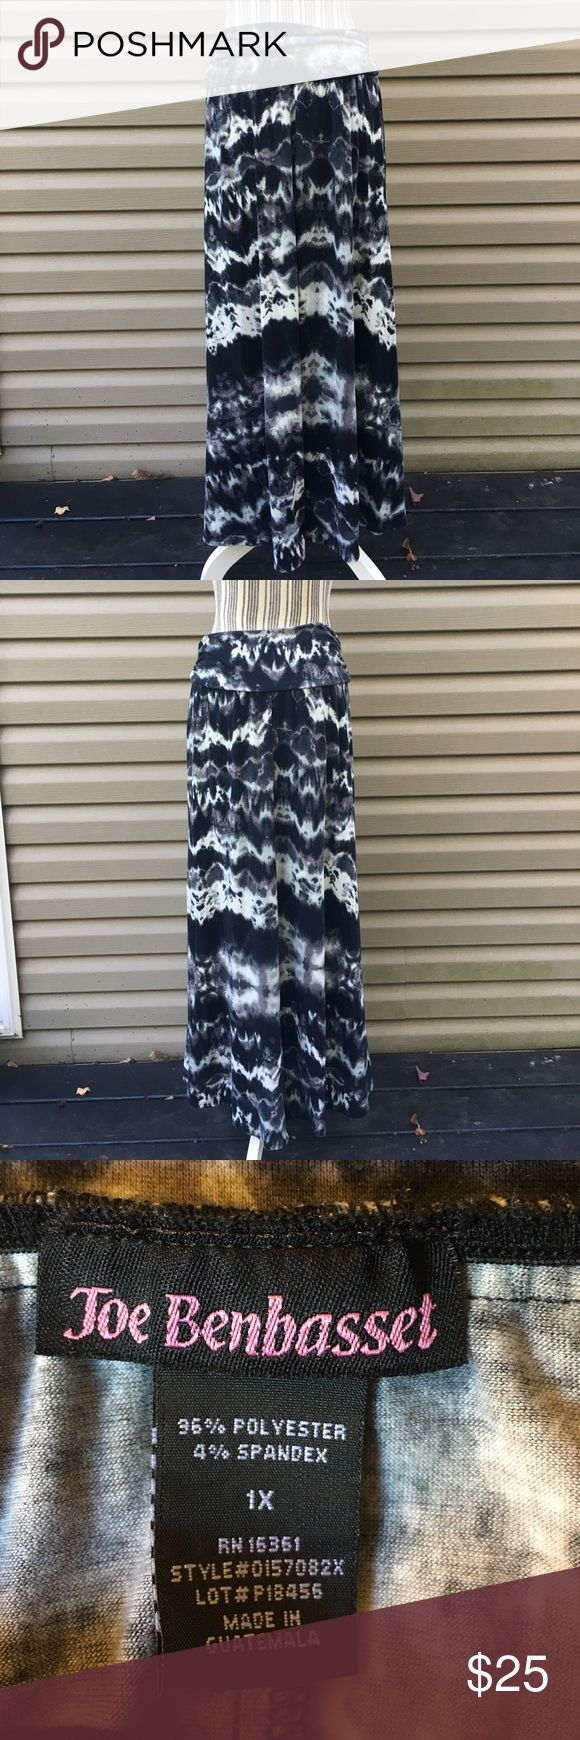 Joe Benbasset maxi skirt. Tie dyed maxi in blacks and grays. This has a lot of stretch. All measurements are approx. Joe Benbasset Skirts Maxi